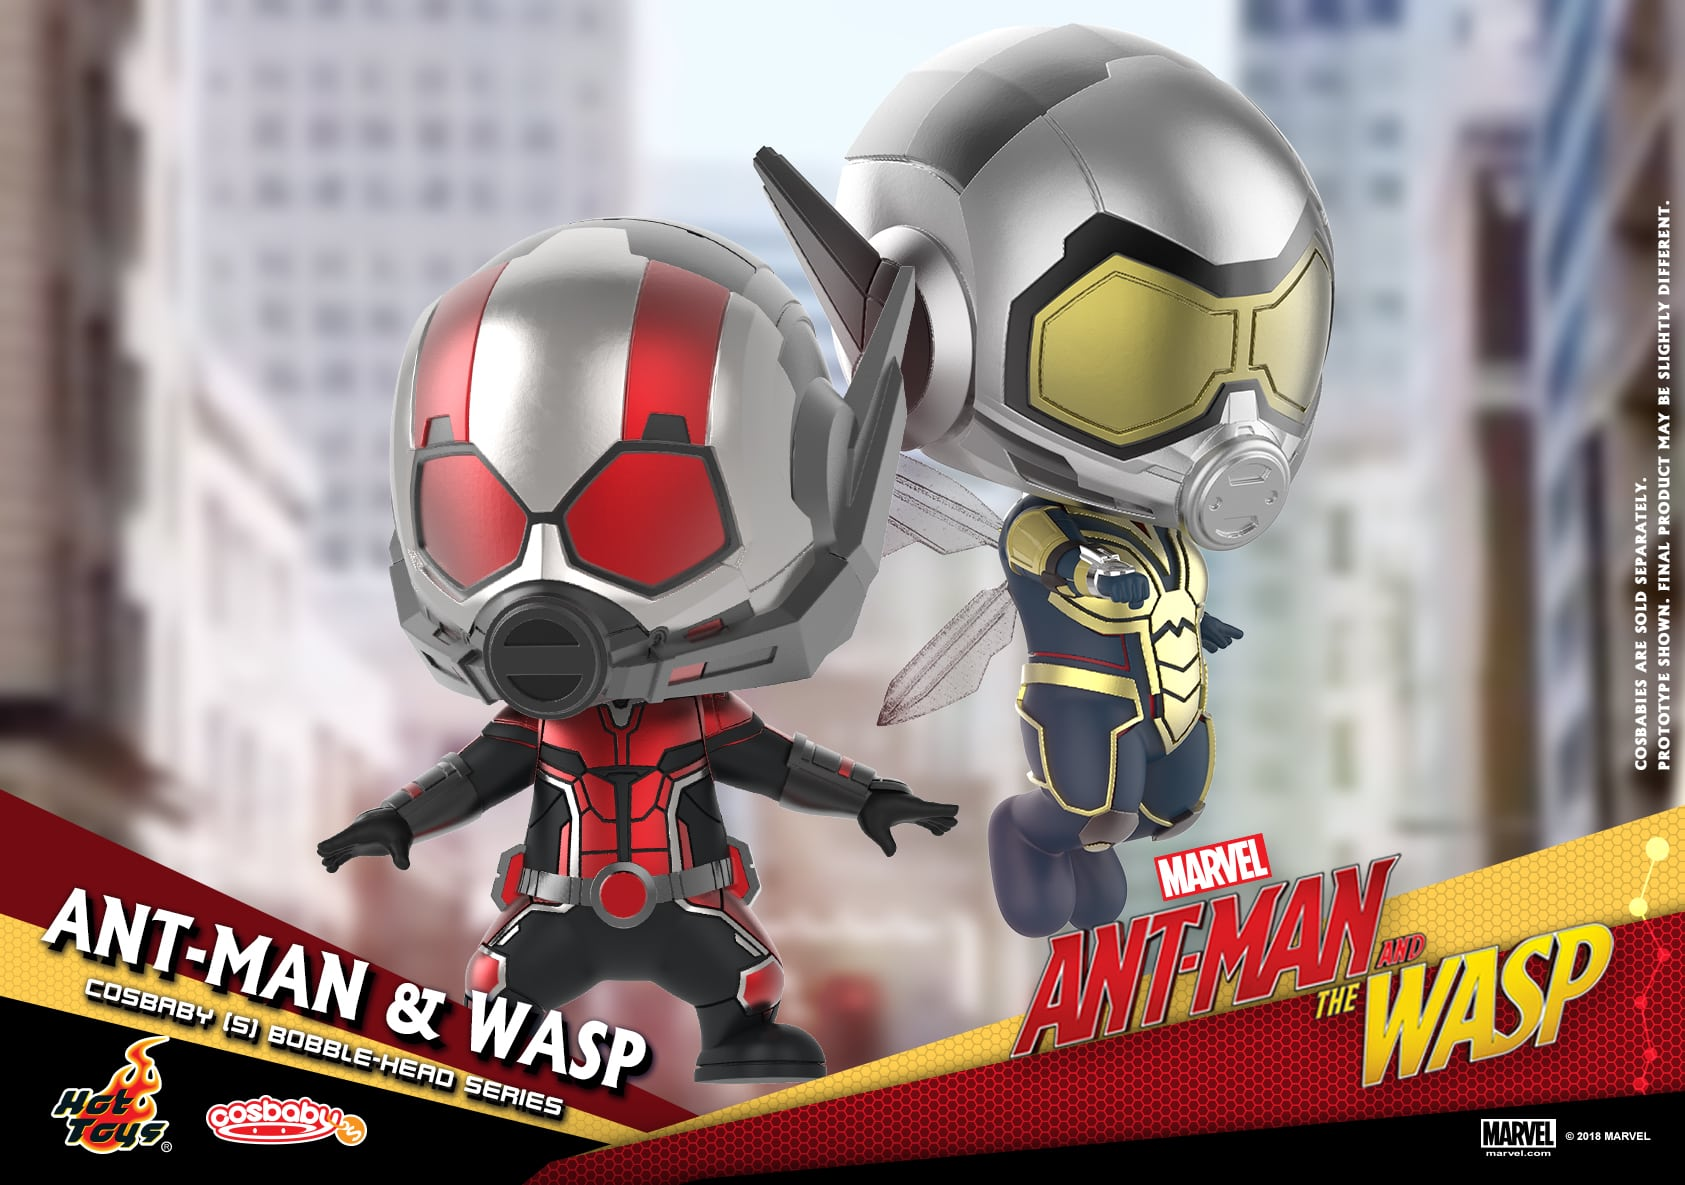 Hot Toys Reveals Its Ant-Man And The Wasp Cosbaby Bobble-6348